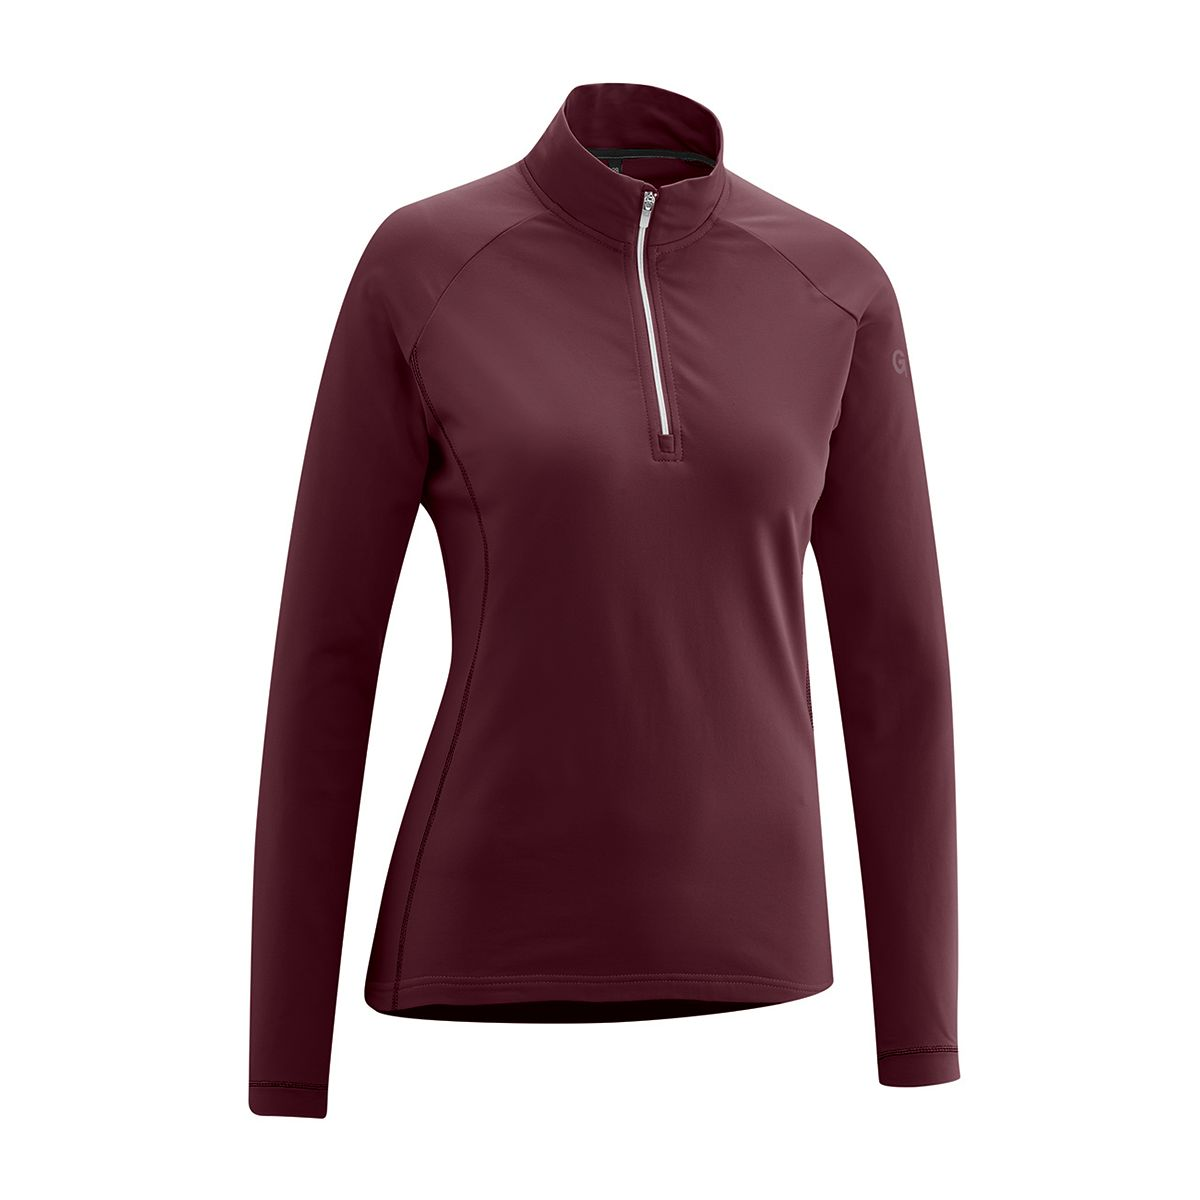 ANTJE women's thermal active shirt